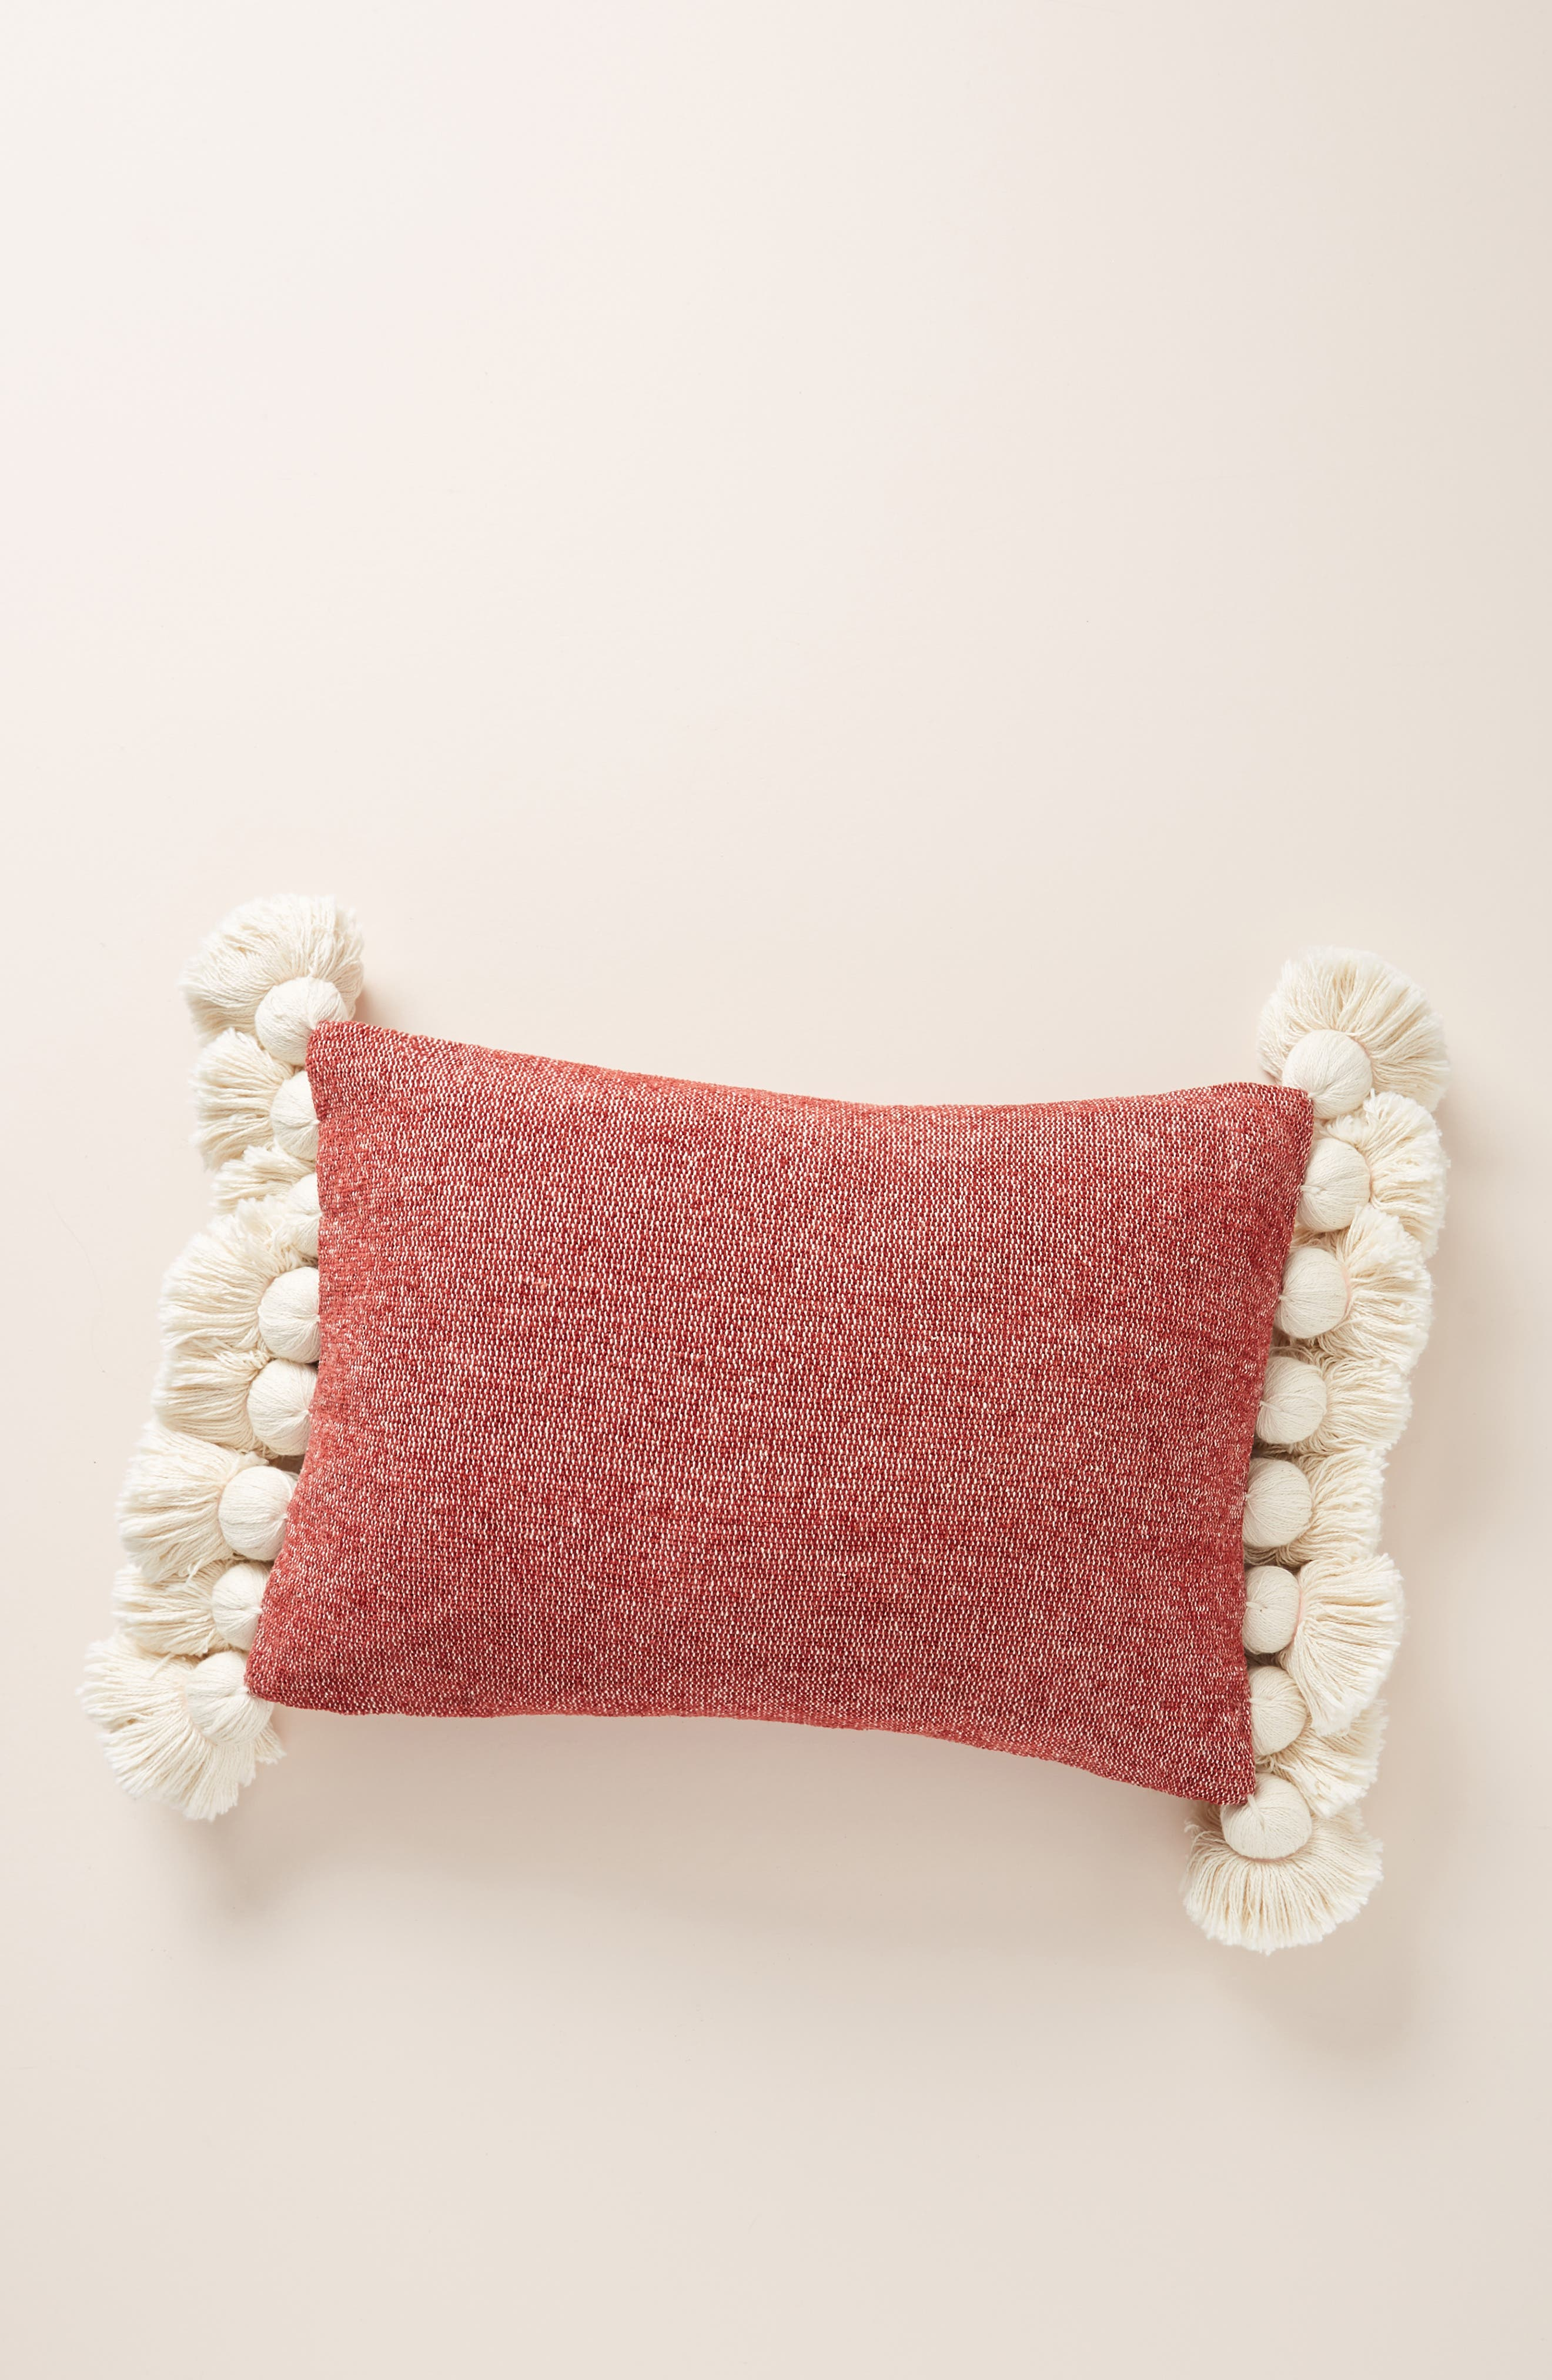 Nadia Tassel Accent Pillow,                             Alternate thumbnail 2, color,                             RUST